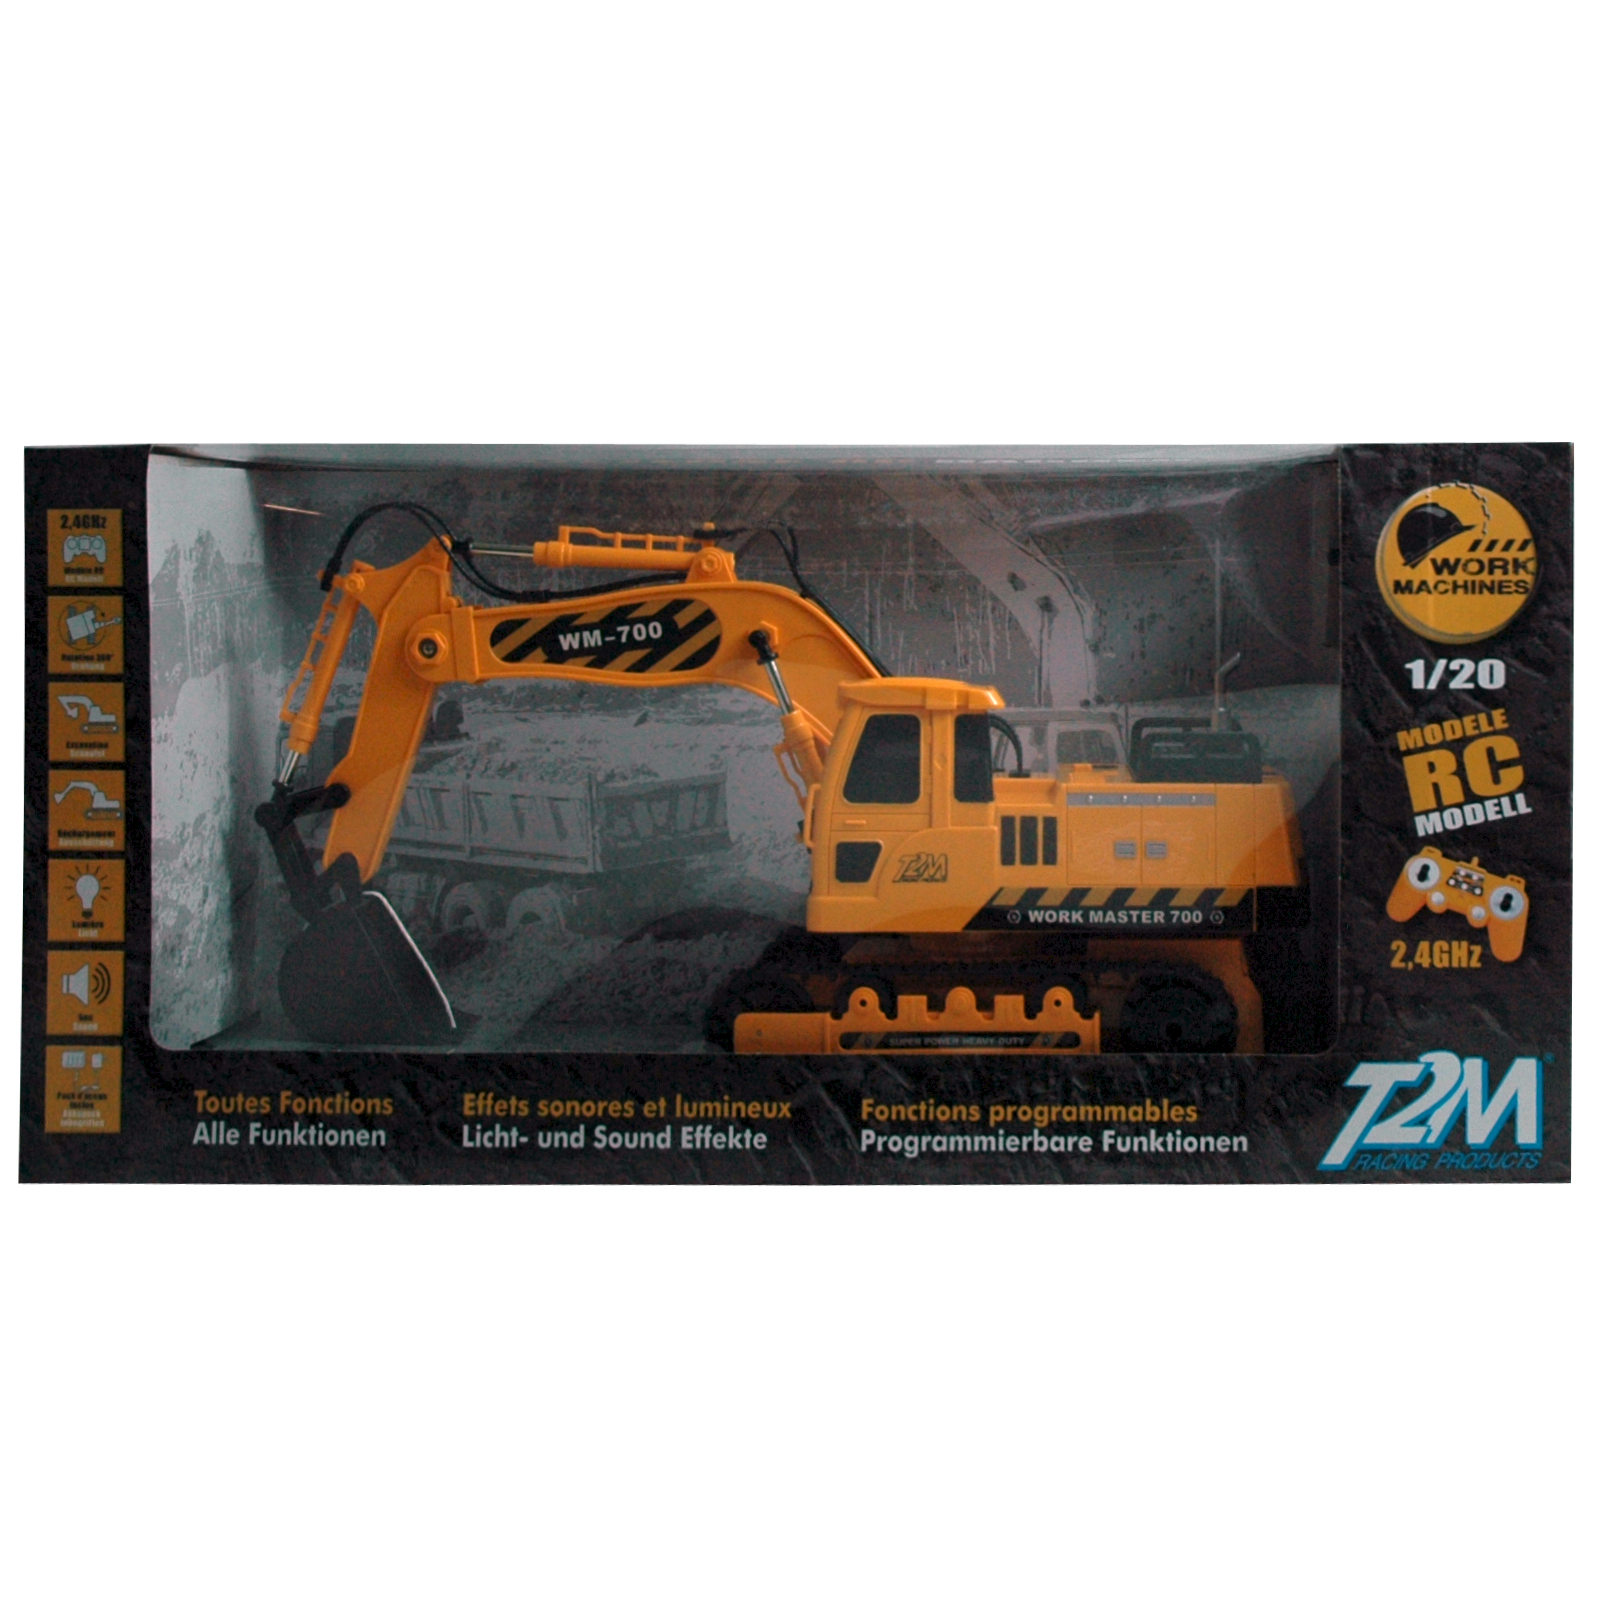 Hammer Bettwäsche Details About T2m Rc Shovel Excavator T700 With Led And Sound